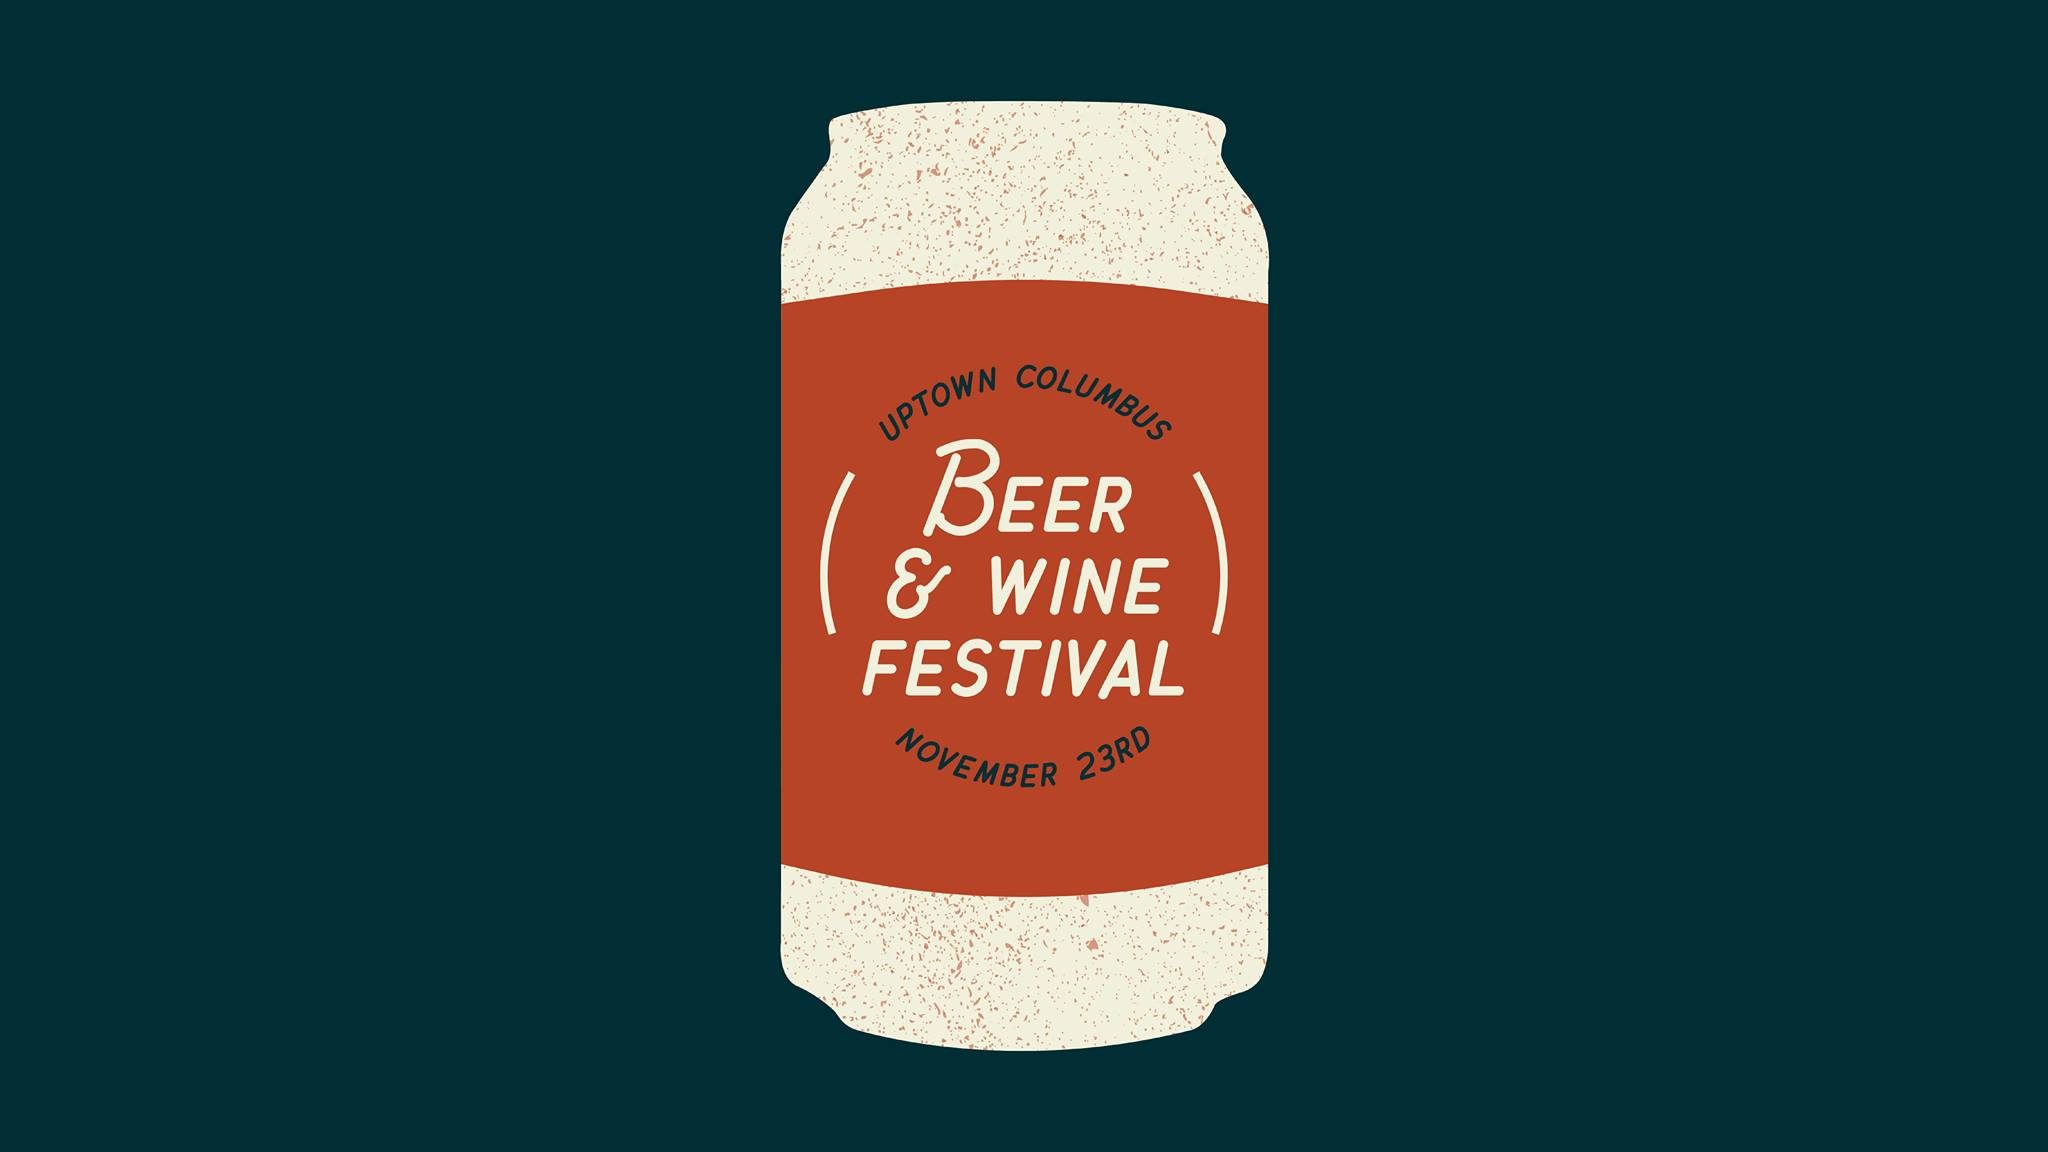 10th Annual Uptown Columbus Beer & Wine Festival